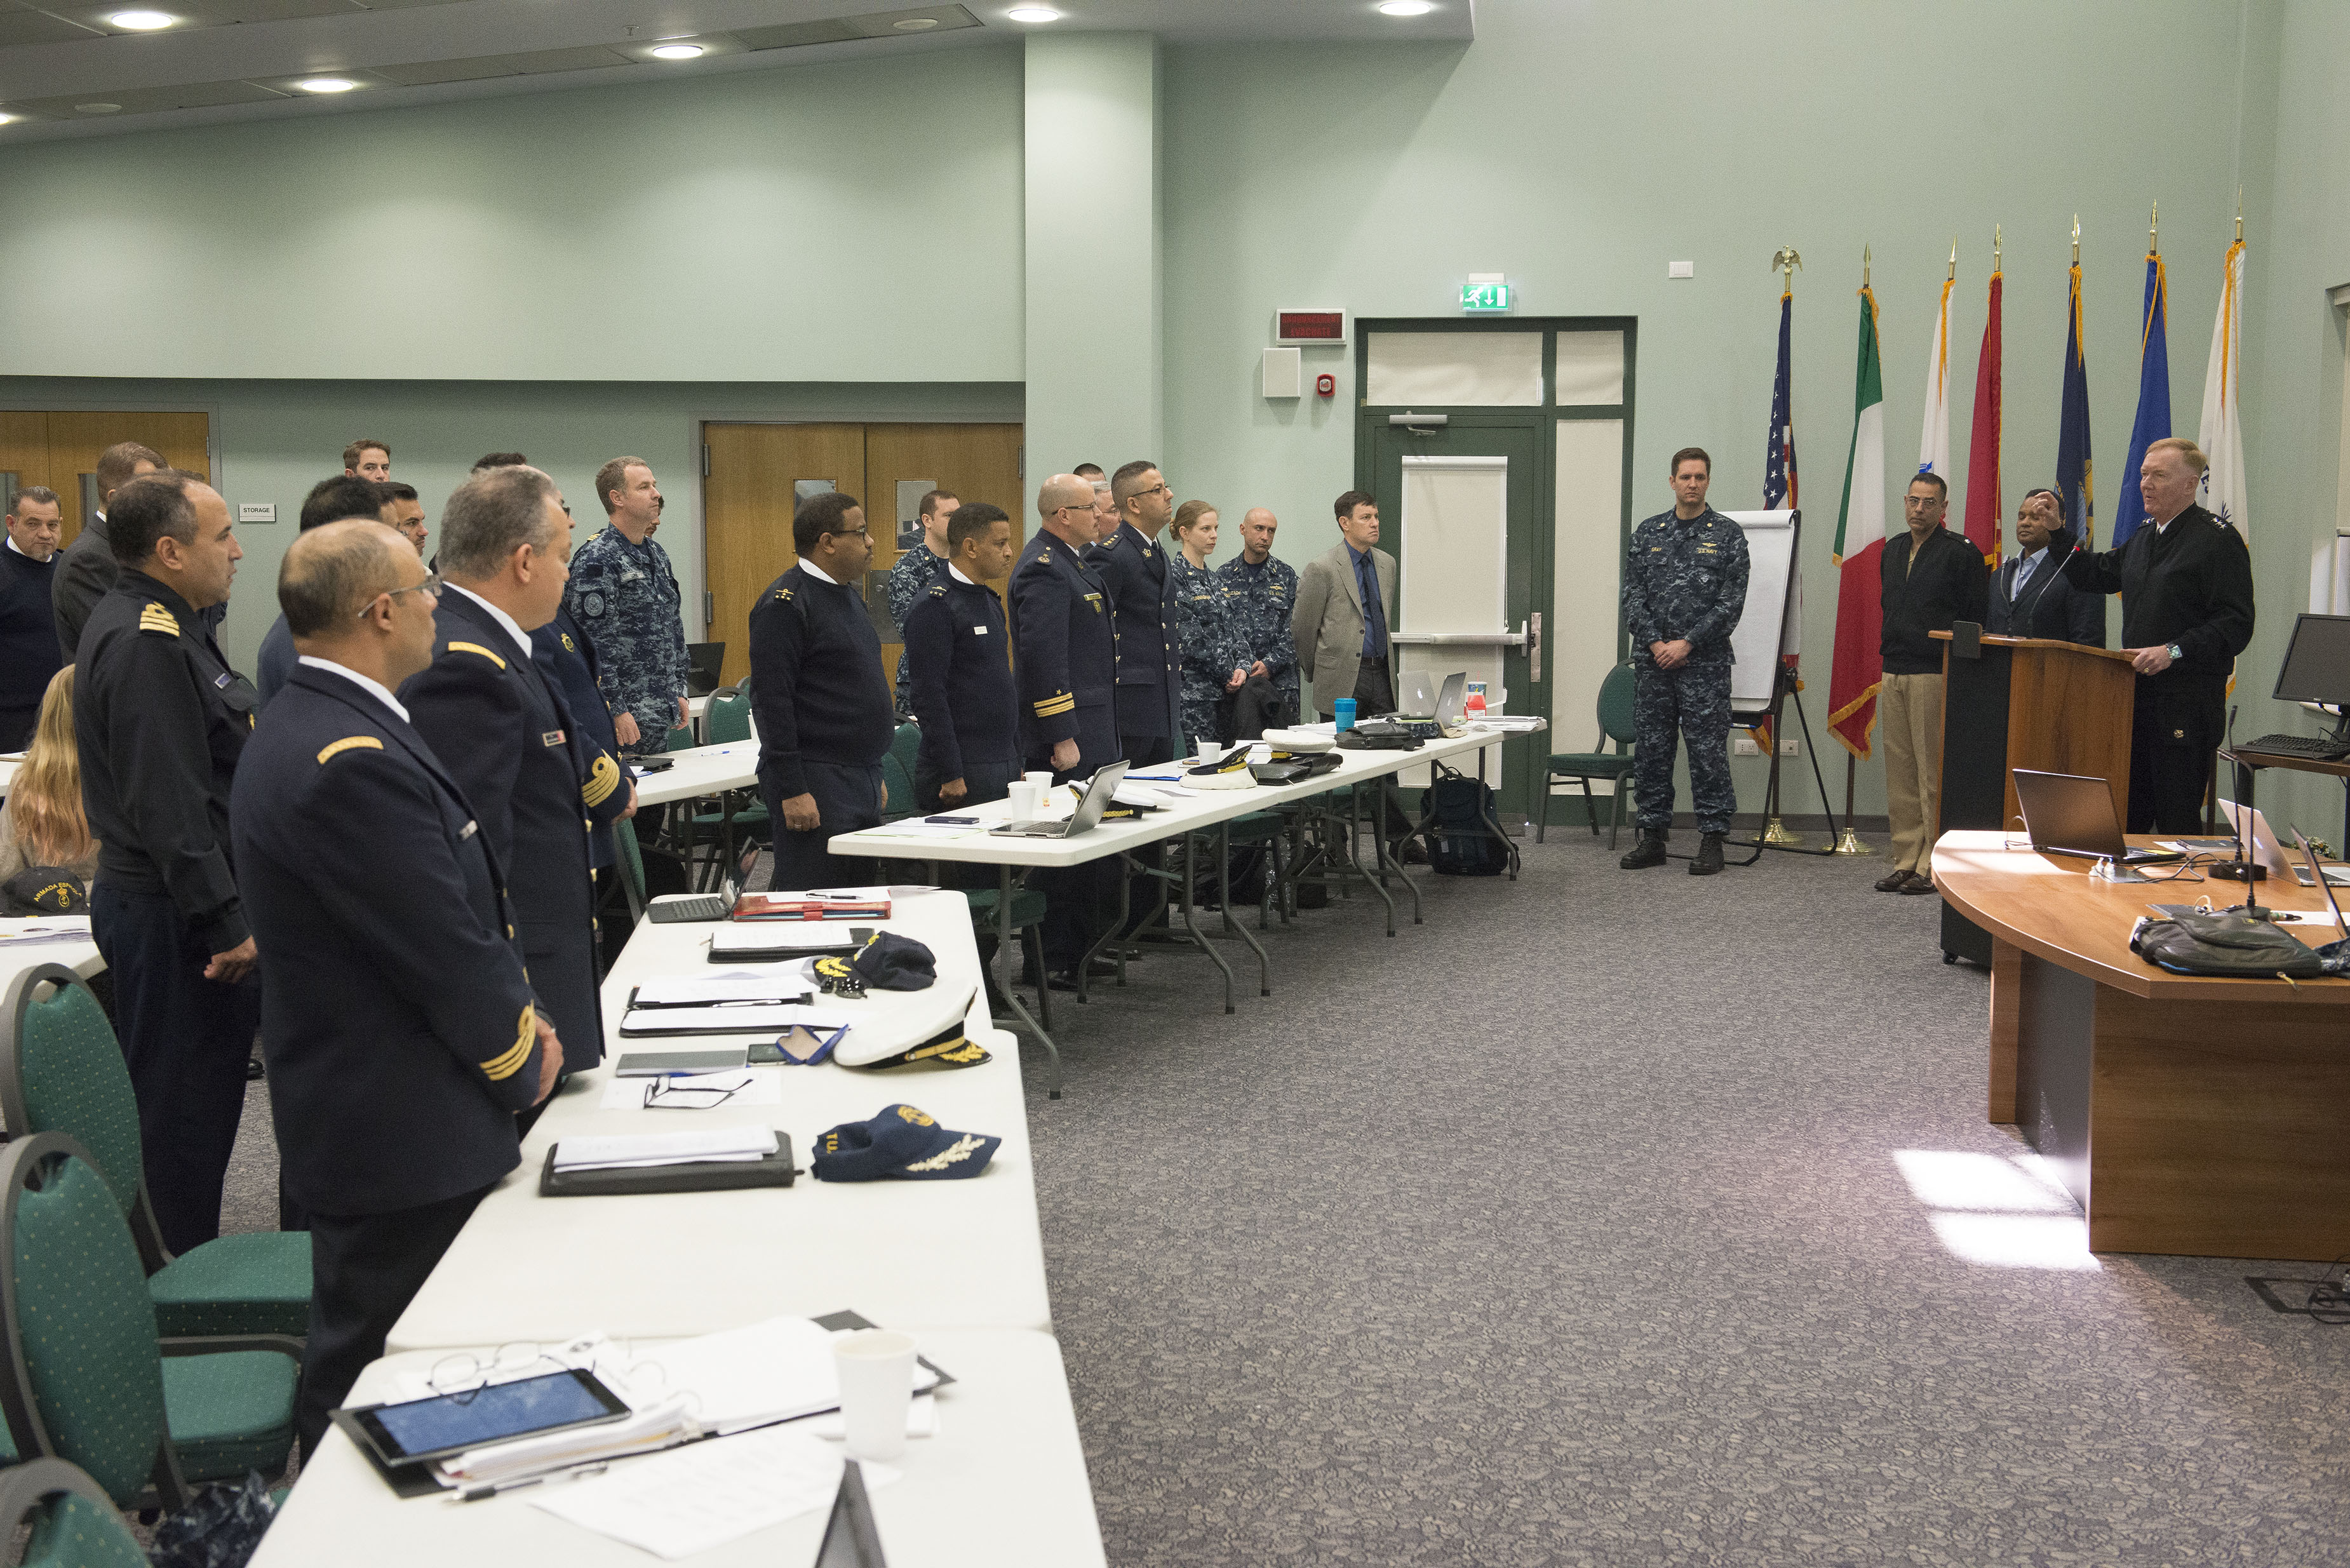 160307-N-OX801-011 NAVAL SUPPORT ACTIVITY NAPLES, Italy (March 7, 2016) Commander, U.S. 6th Fleet, Vice Adm. James Foggo III, right, gives remarks at the Phoenix Express 2016 planning conference at Naval Support Activity Naples, Italy, March 7, 2016. U.S. 6th Fleet, headquartered in Naples, Italy, conducts the full spectrum of joint and naval operations, often in concert with allied, joint, and interagency partner, in order to advance U.S. national interests and security and stability in Europe and Africa. (U.S. Navy photo by Mass Communication Specialist 2nd Class Daniel P. Schumacher/Released)